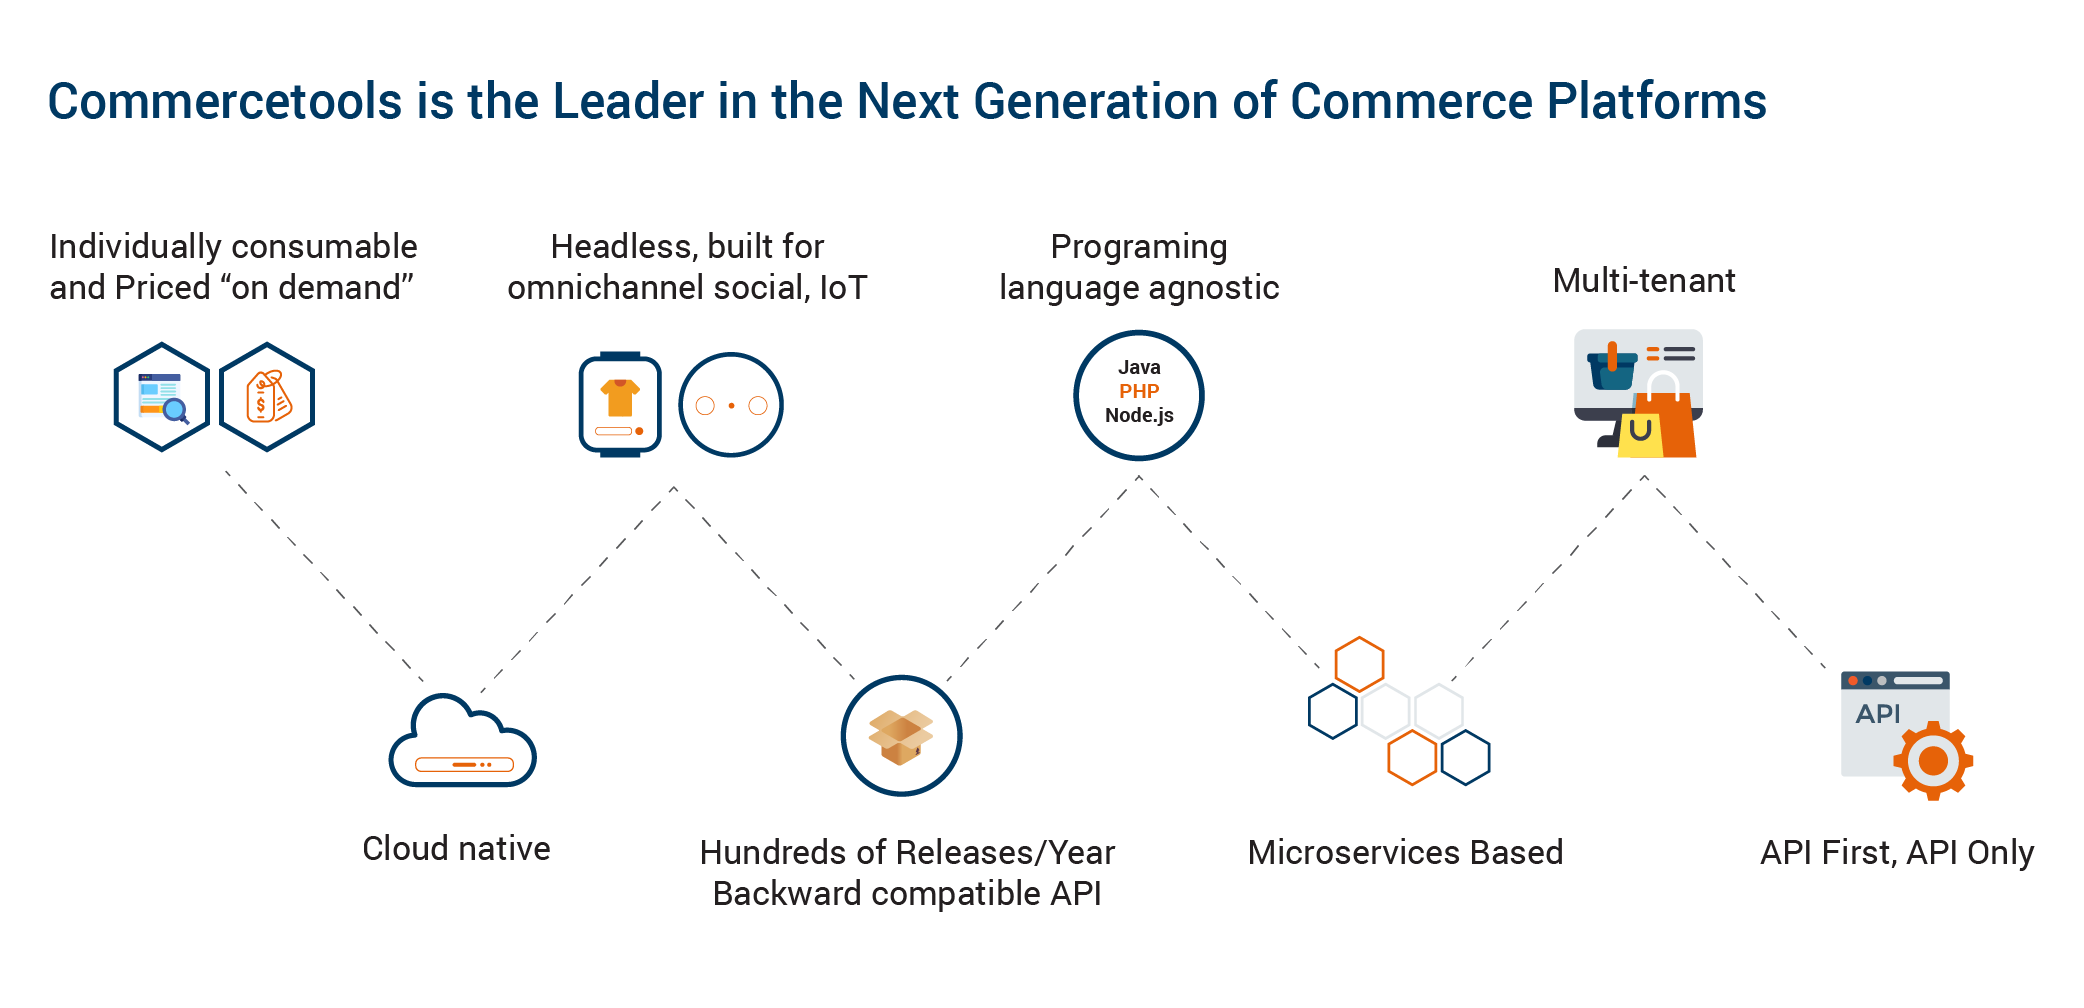 how commercetools is leading